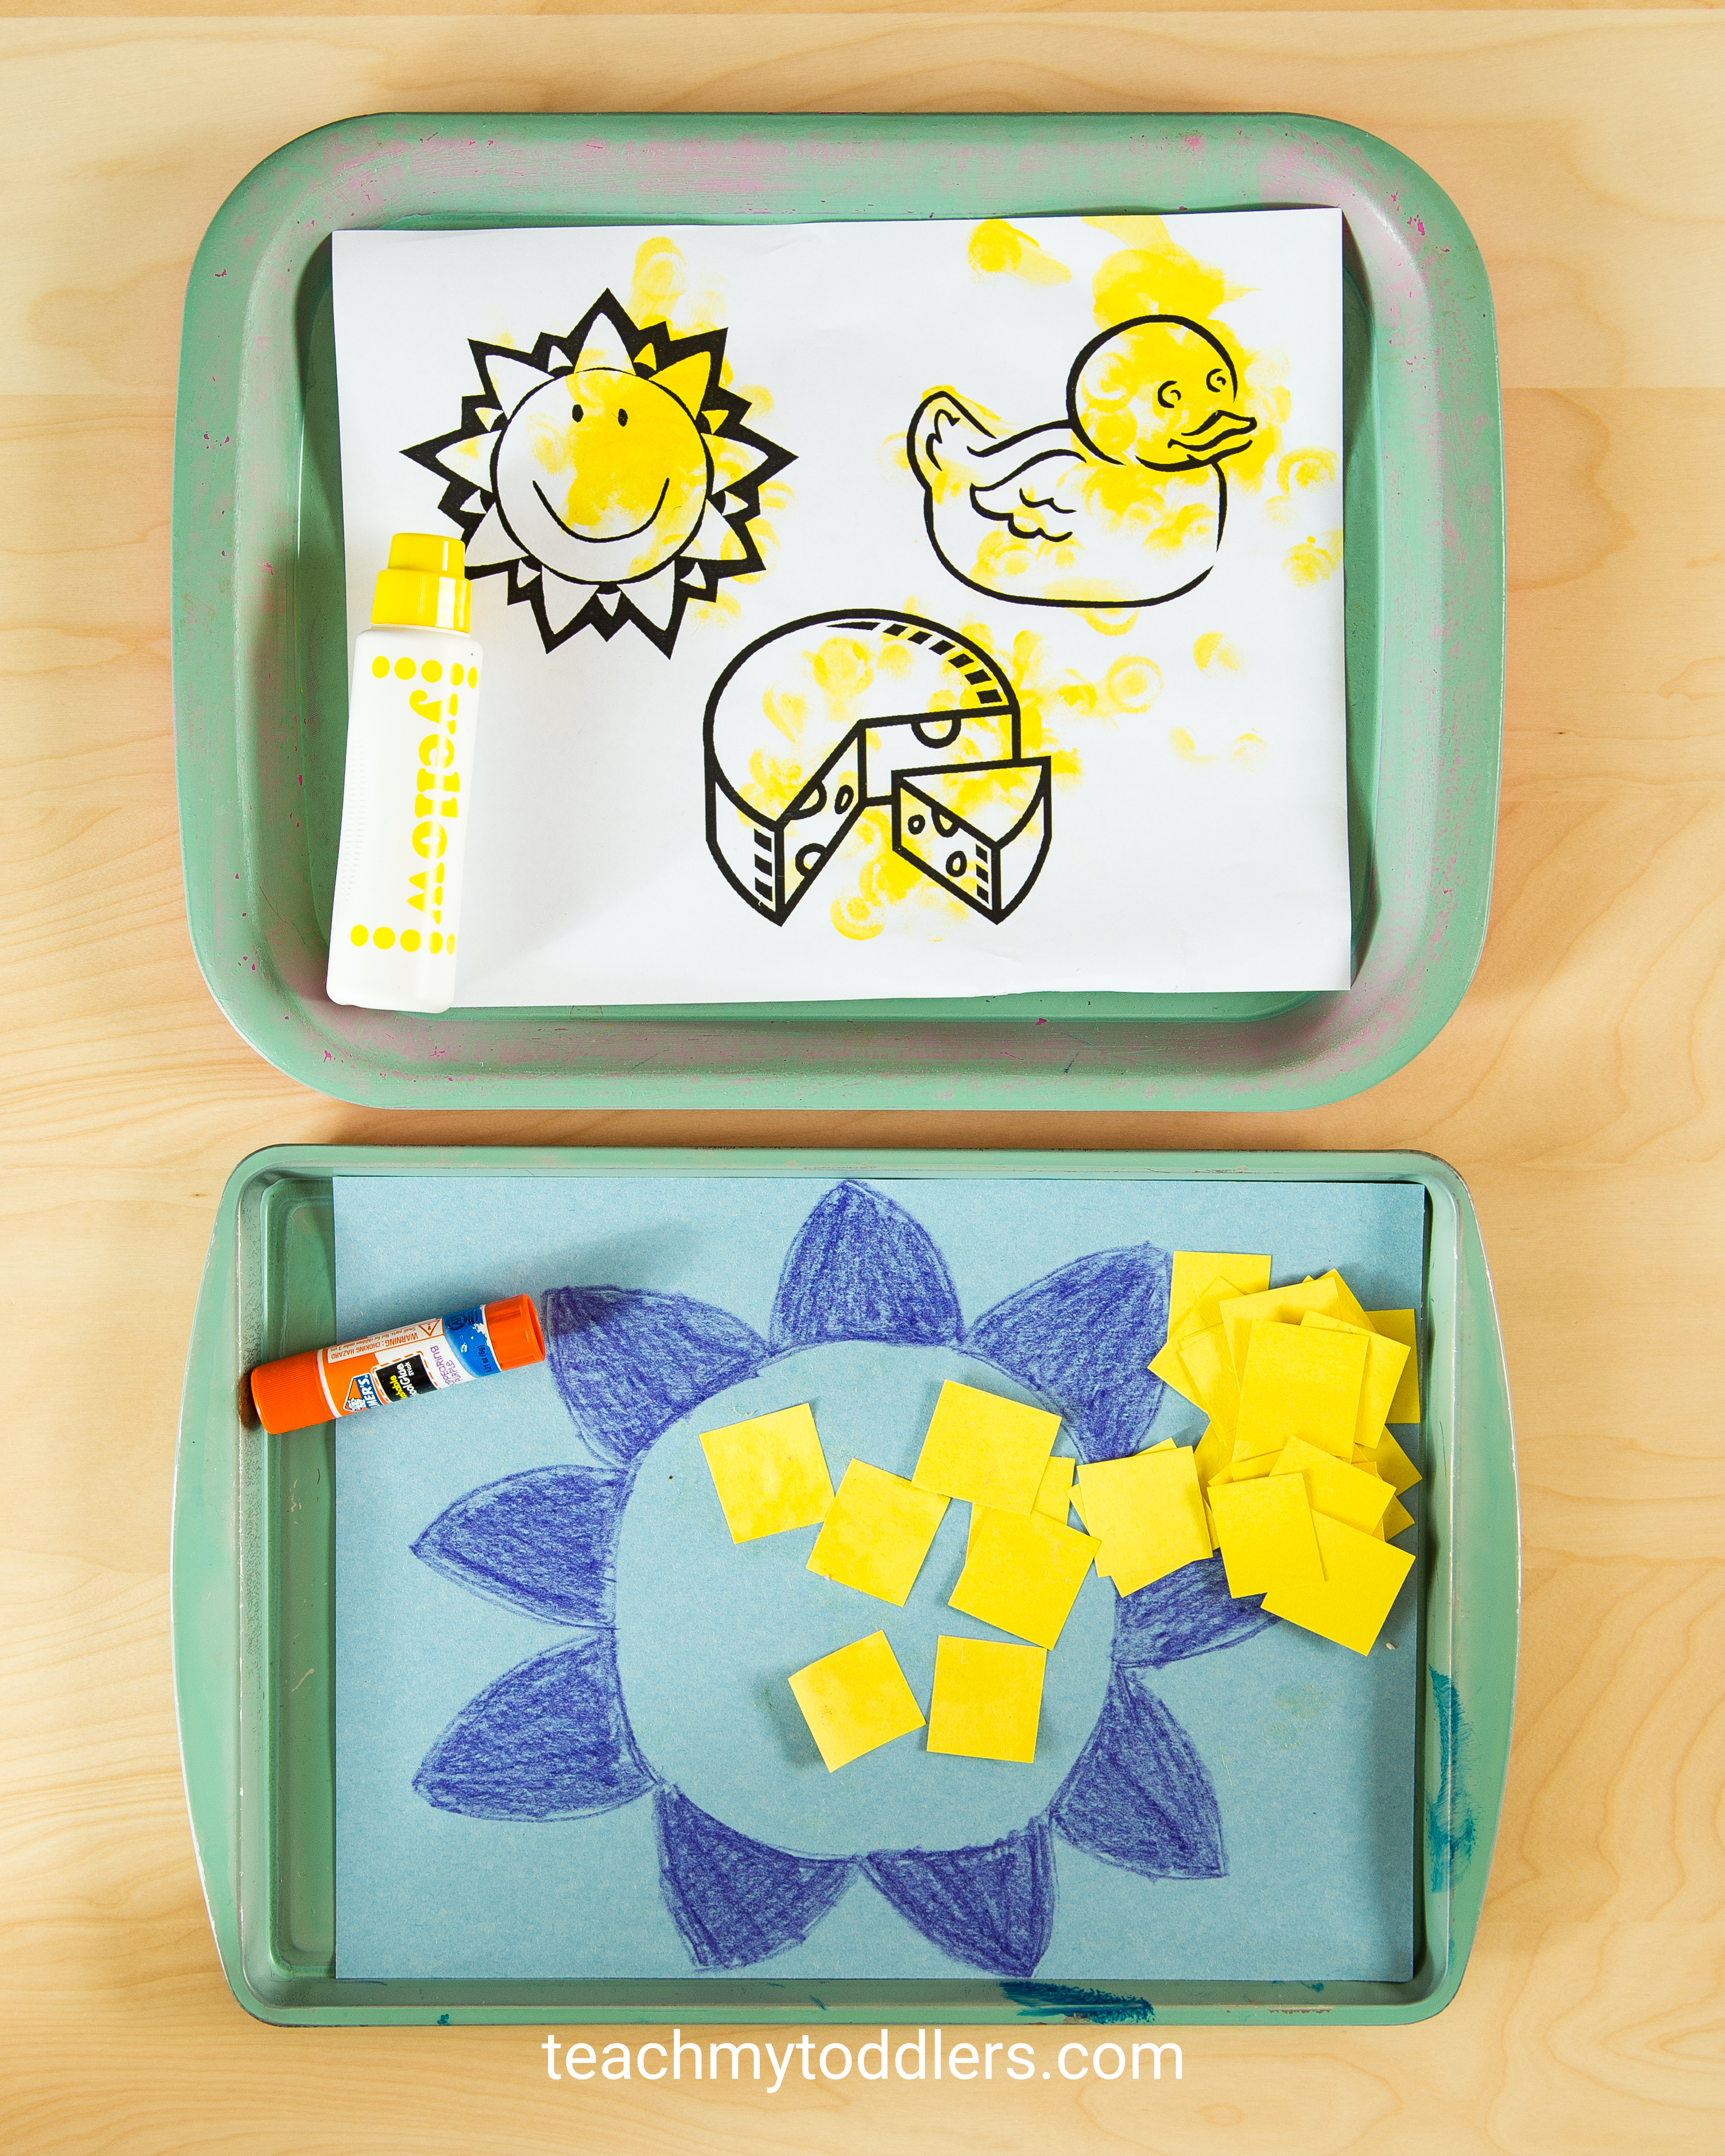 A fun activity to teach your toddler the color yellow